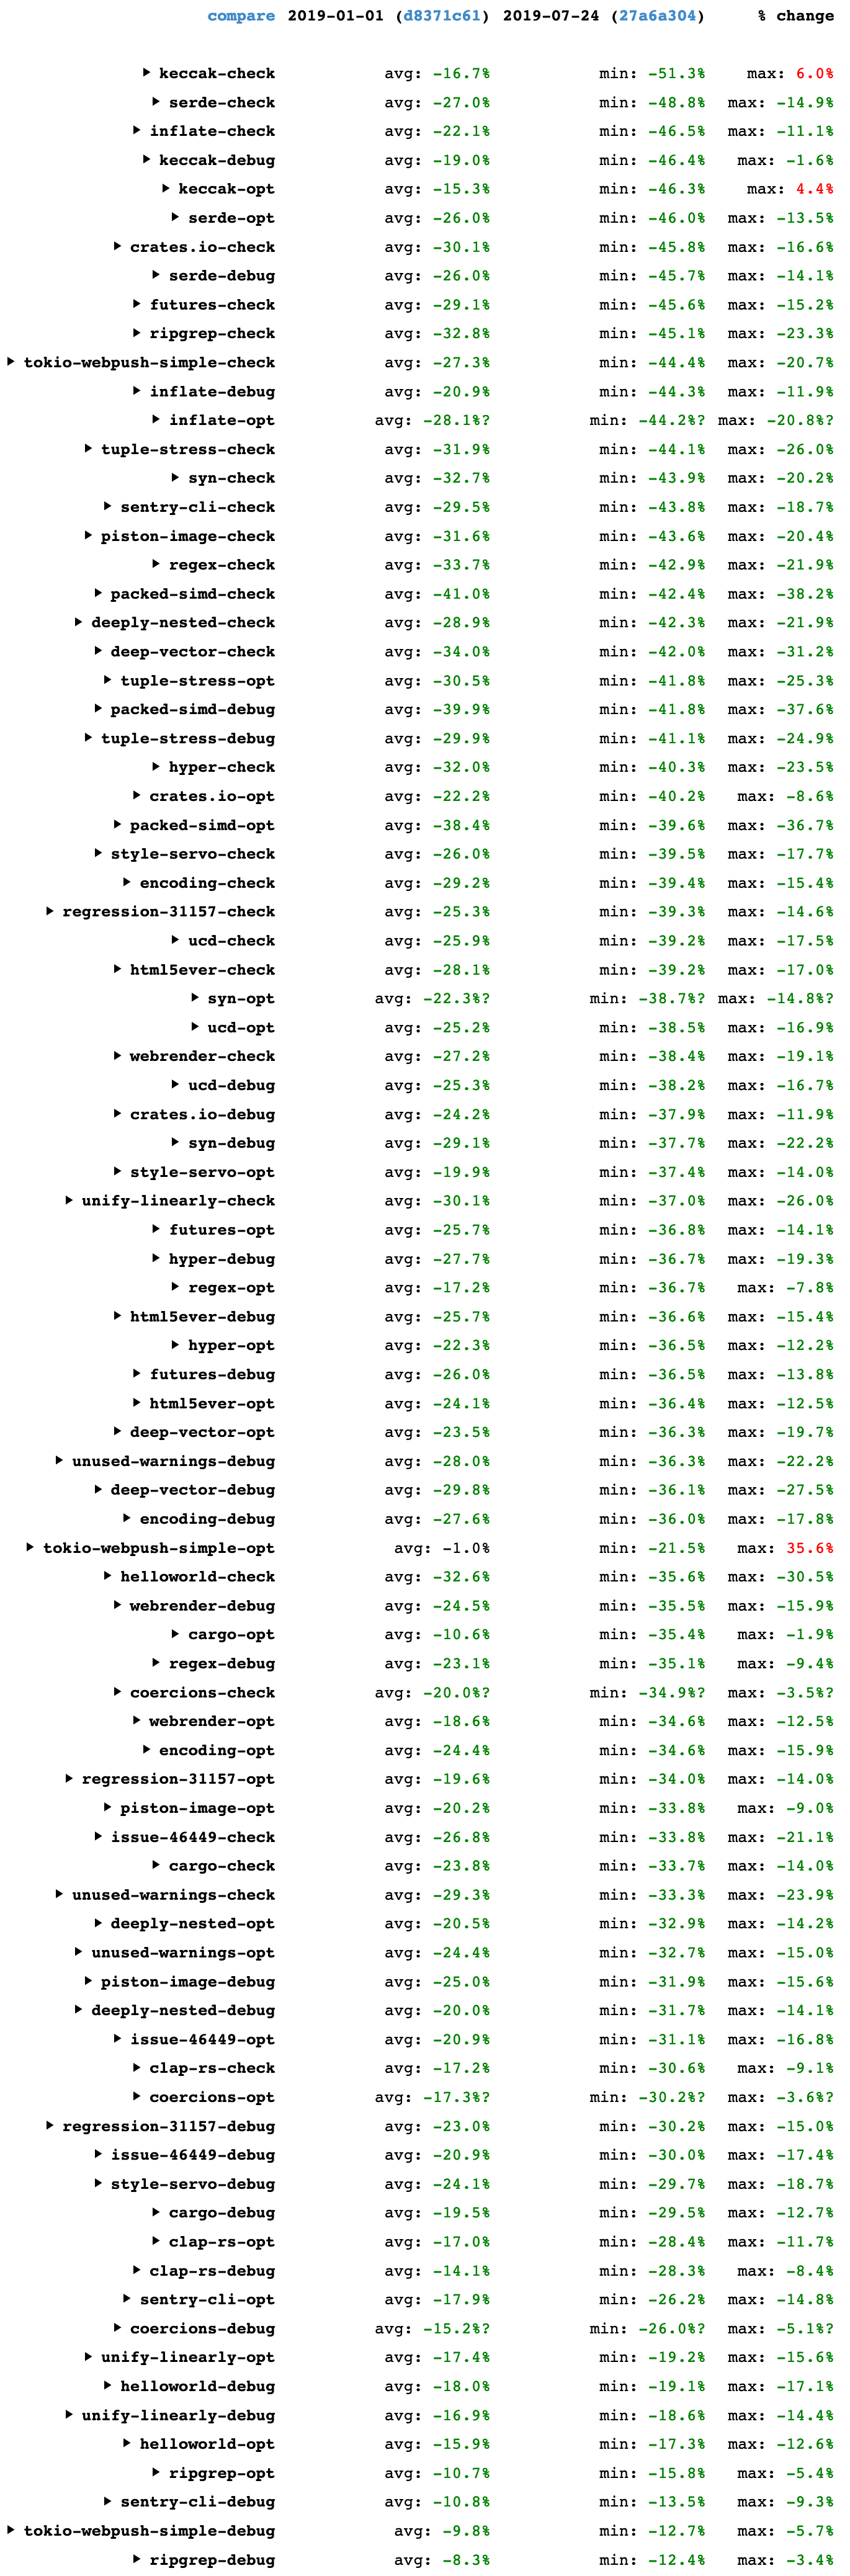 Table showing Rust compiler speedups between 2019-01-01 and 2019-07-24